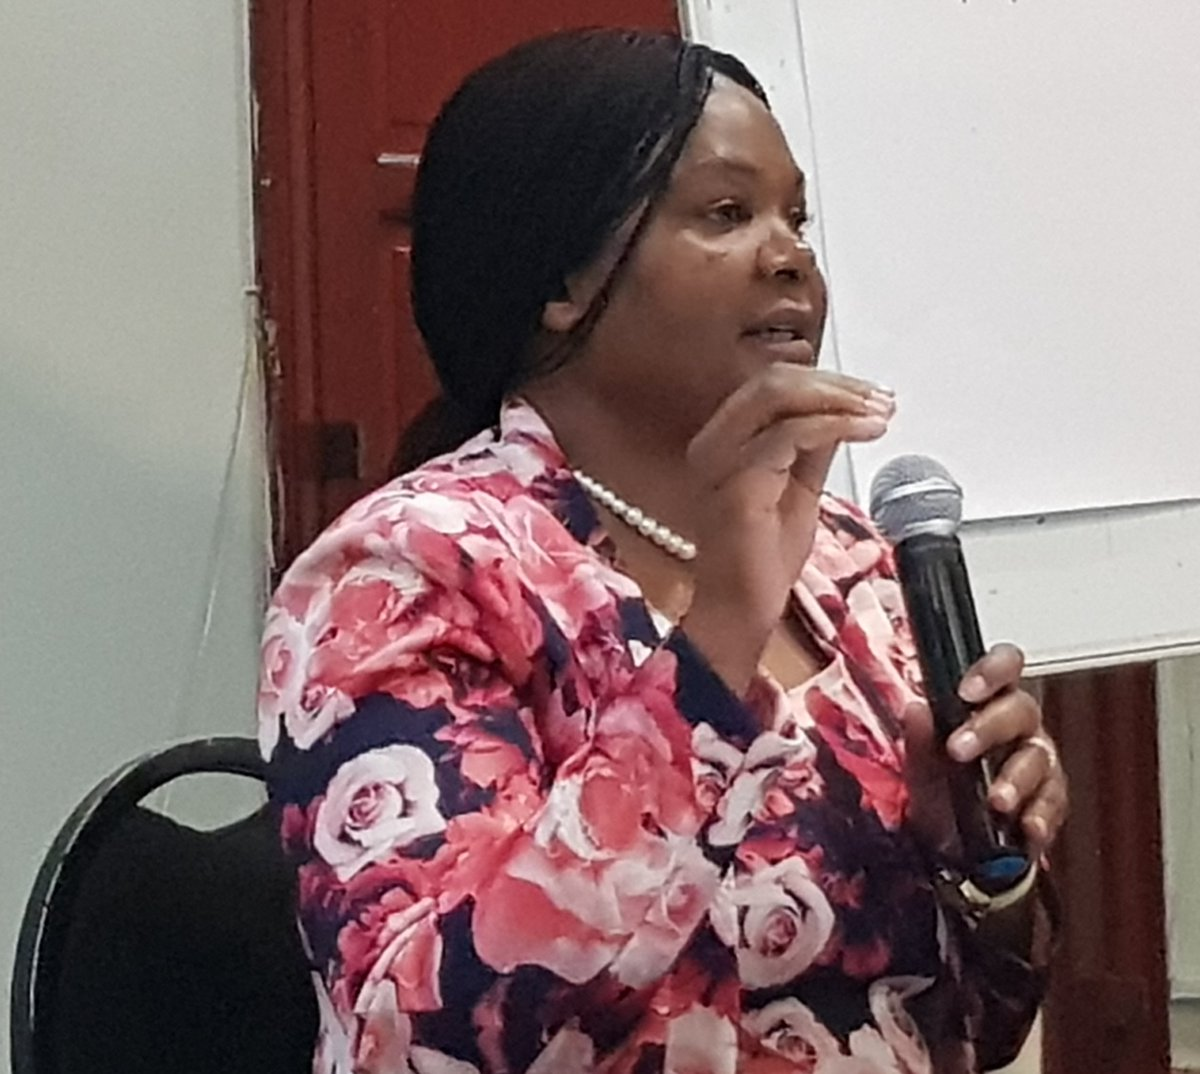 #MakanatsaMakonese of #Arisa opens a 4day #MediaFreedom &amp; #DigitalRights training in #Lusaka #Zambia and says #women are still being blocked in accessing land becoz of old #laws<br>http://pic.twitter.com/9adClU1pOd